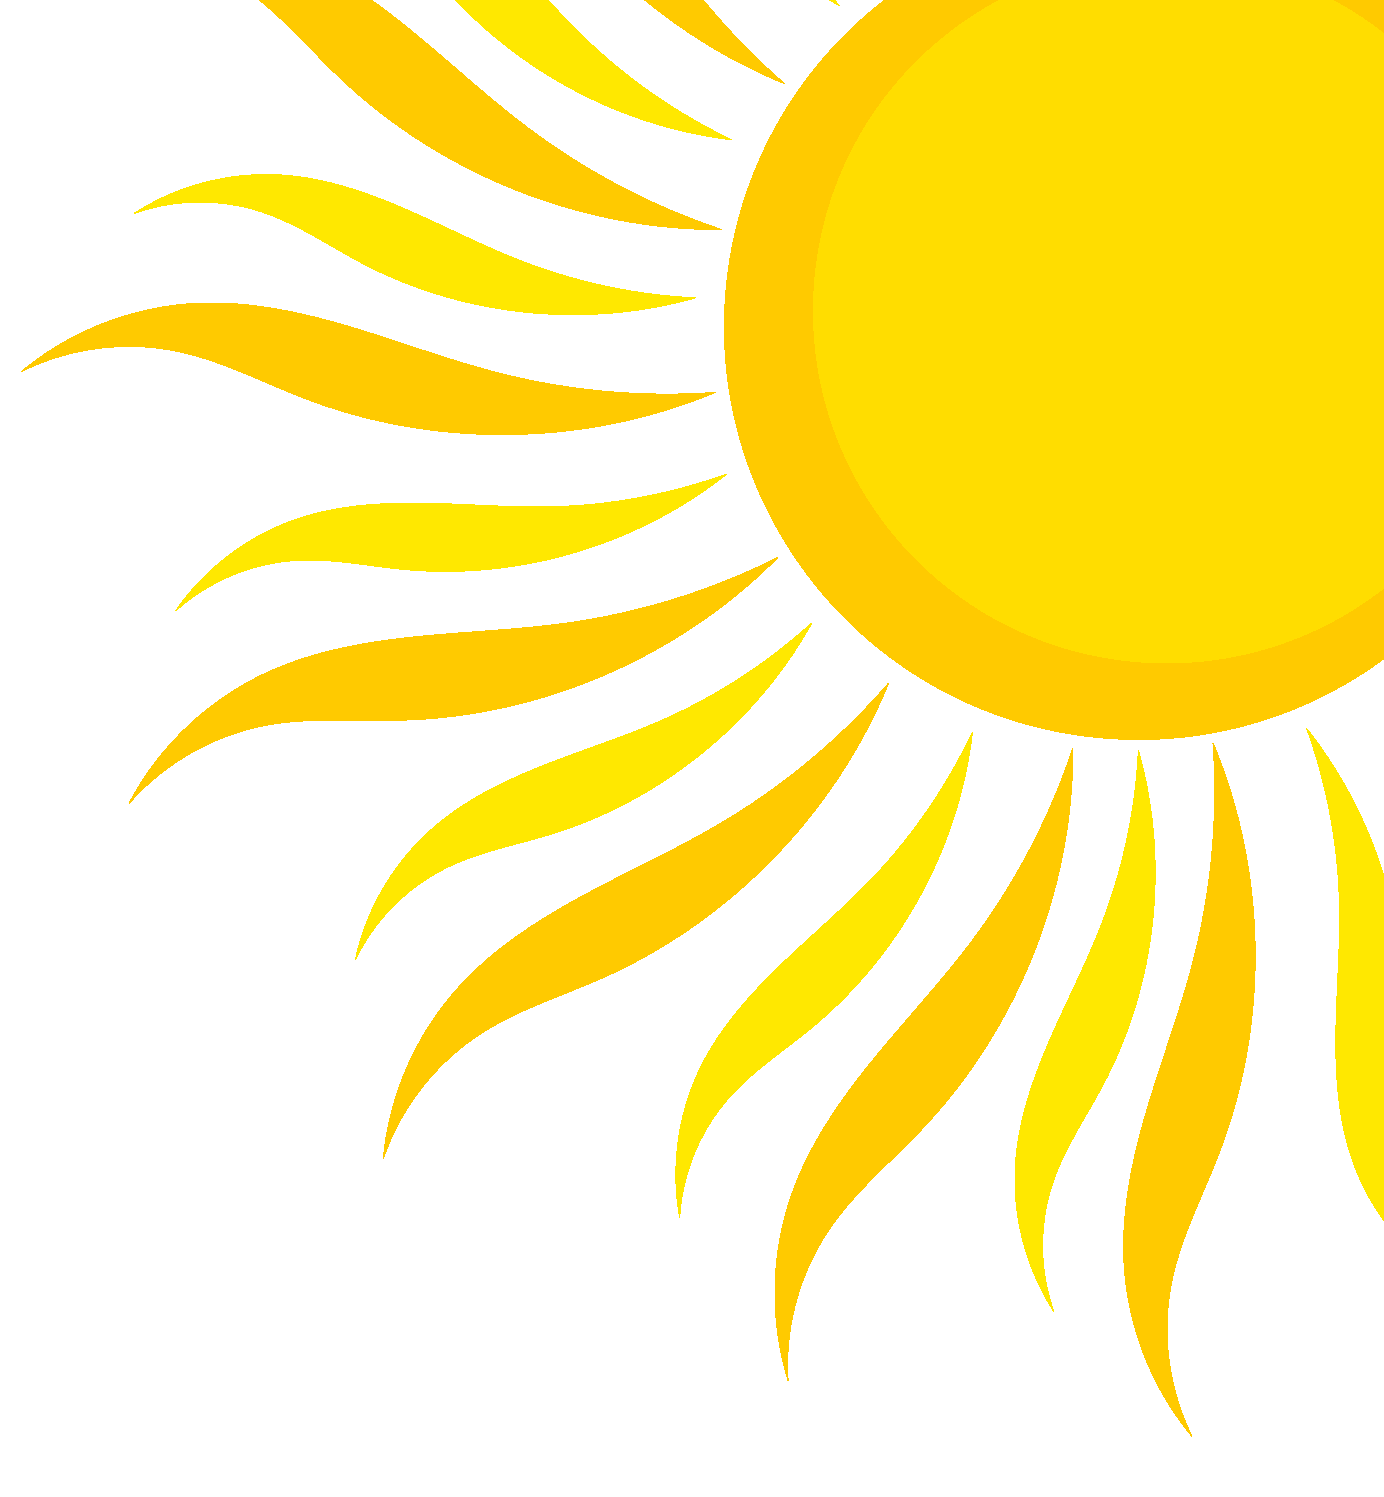 Hot summer sun clipart image transparent download Half Sun Clipart image transparent download